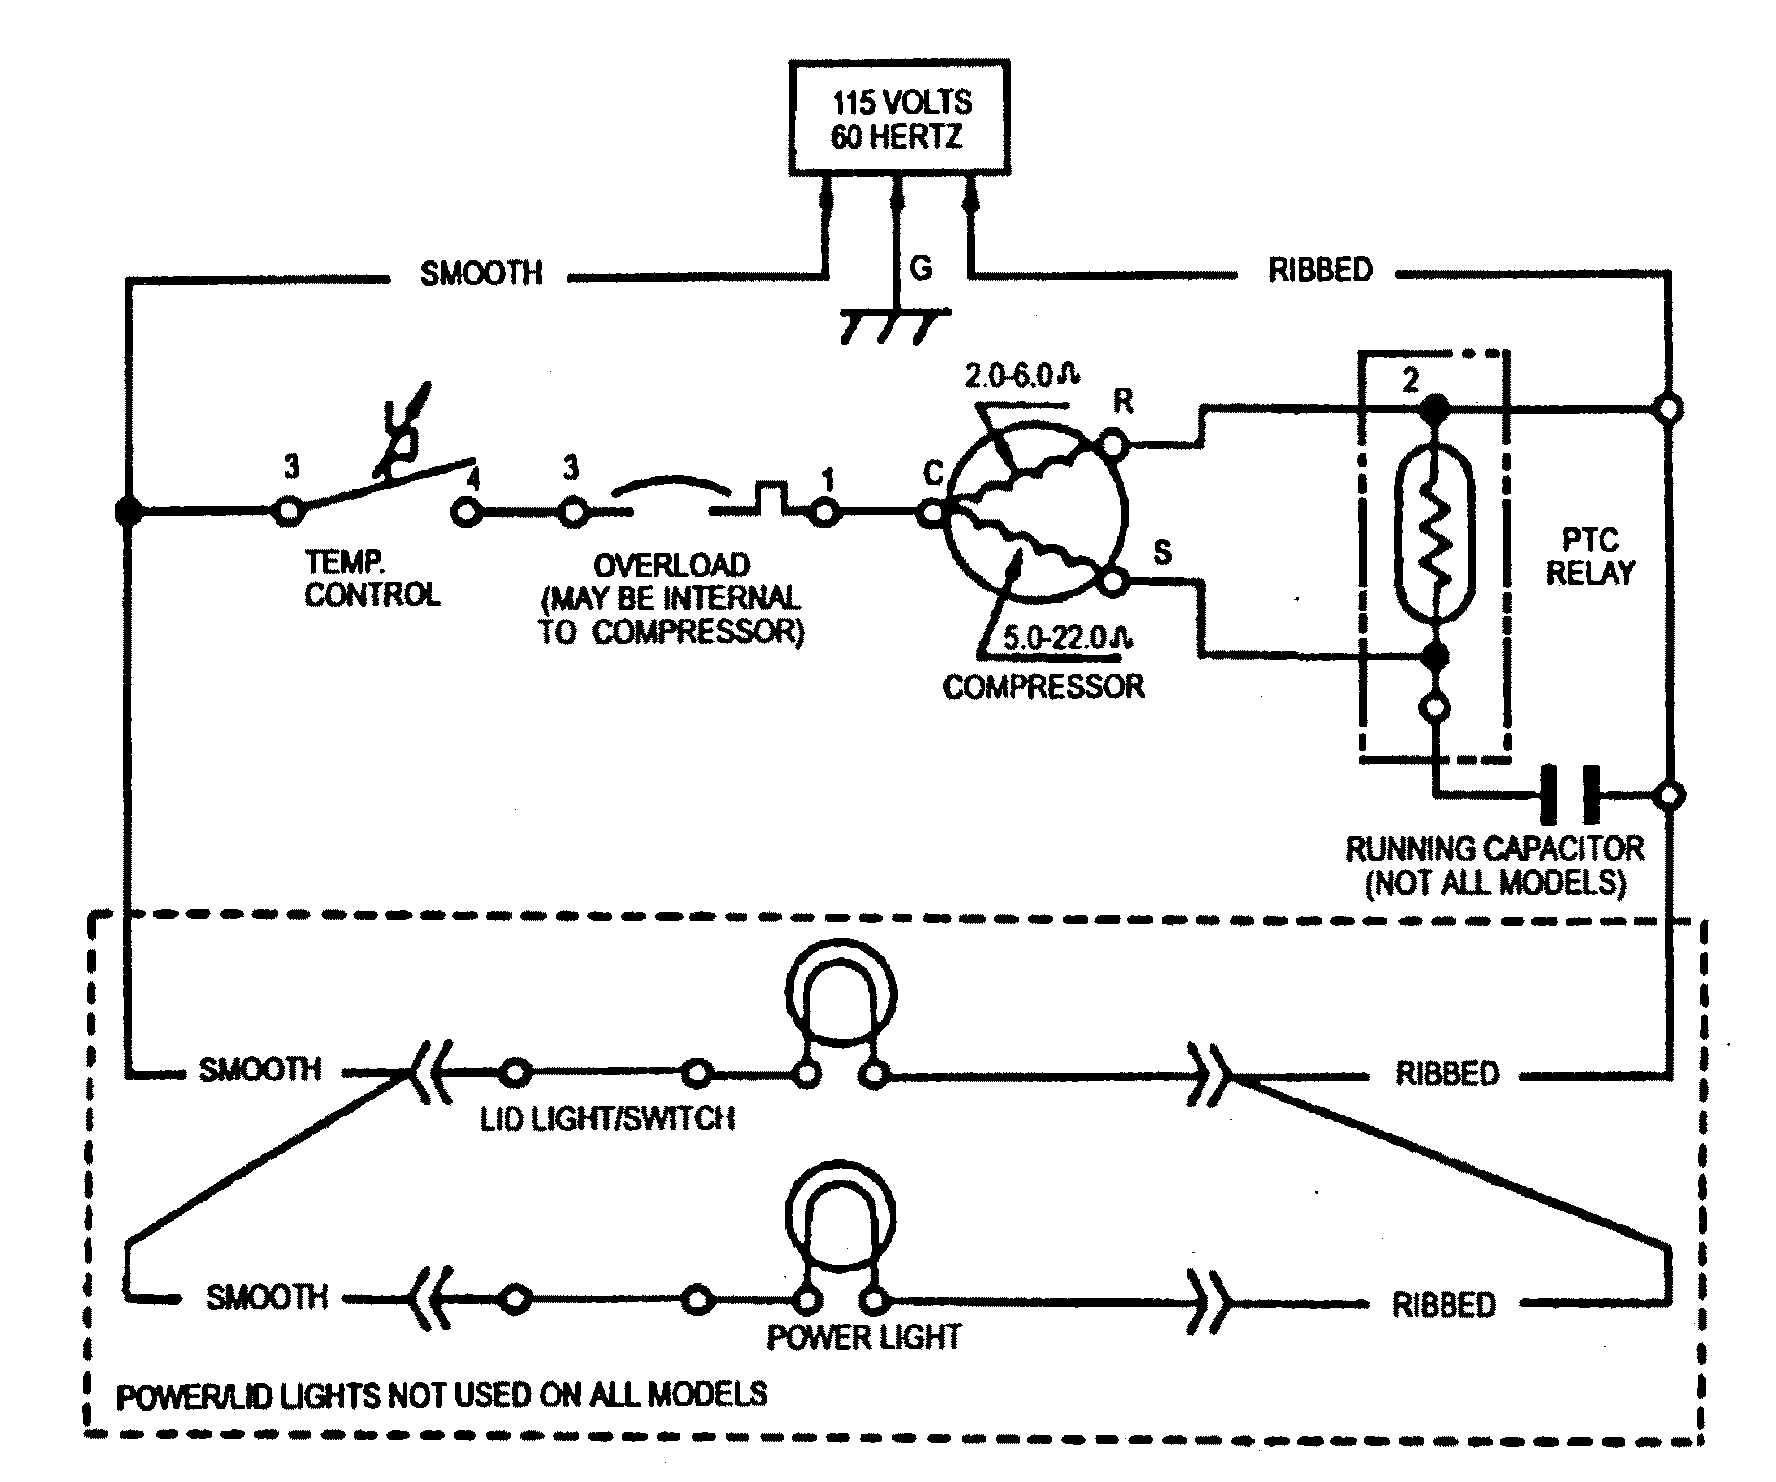 westinghouse fridge thermostat wiring diagram